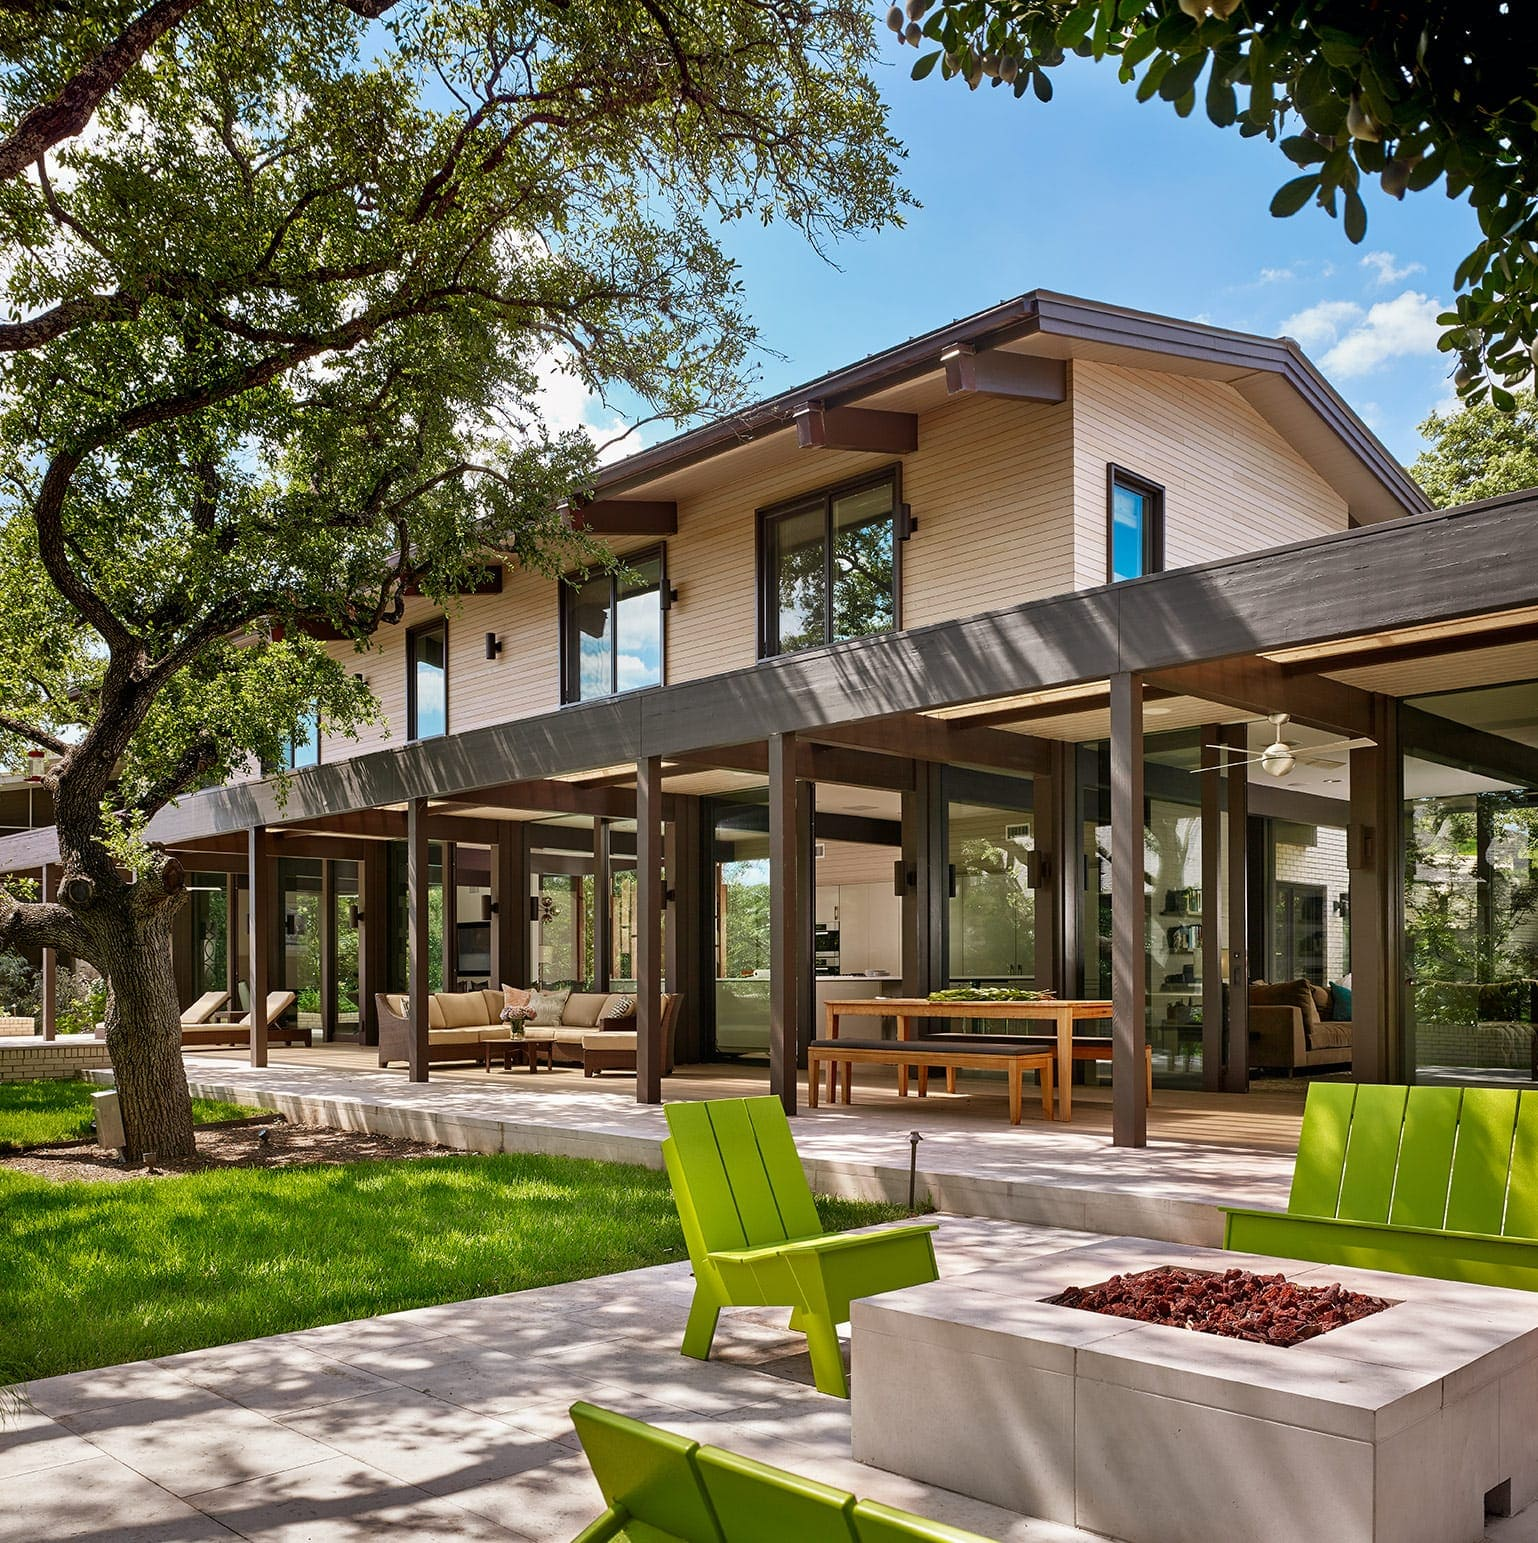 Mount Bonnell Drive Residence - How much does it cost to hire an architect in Austin